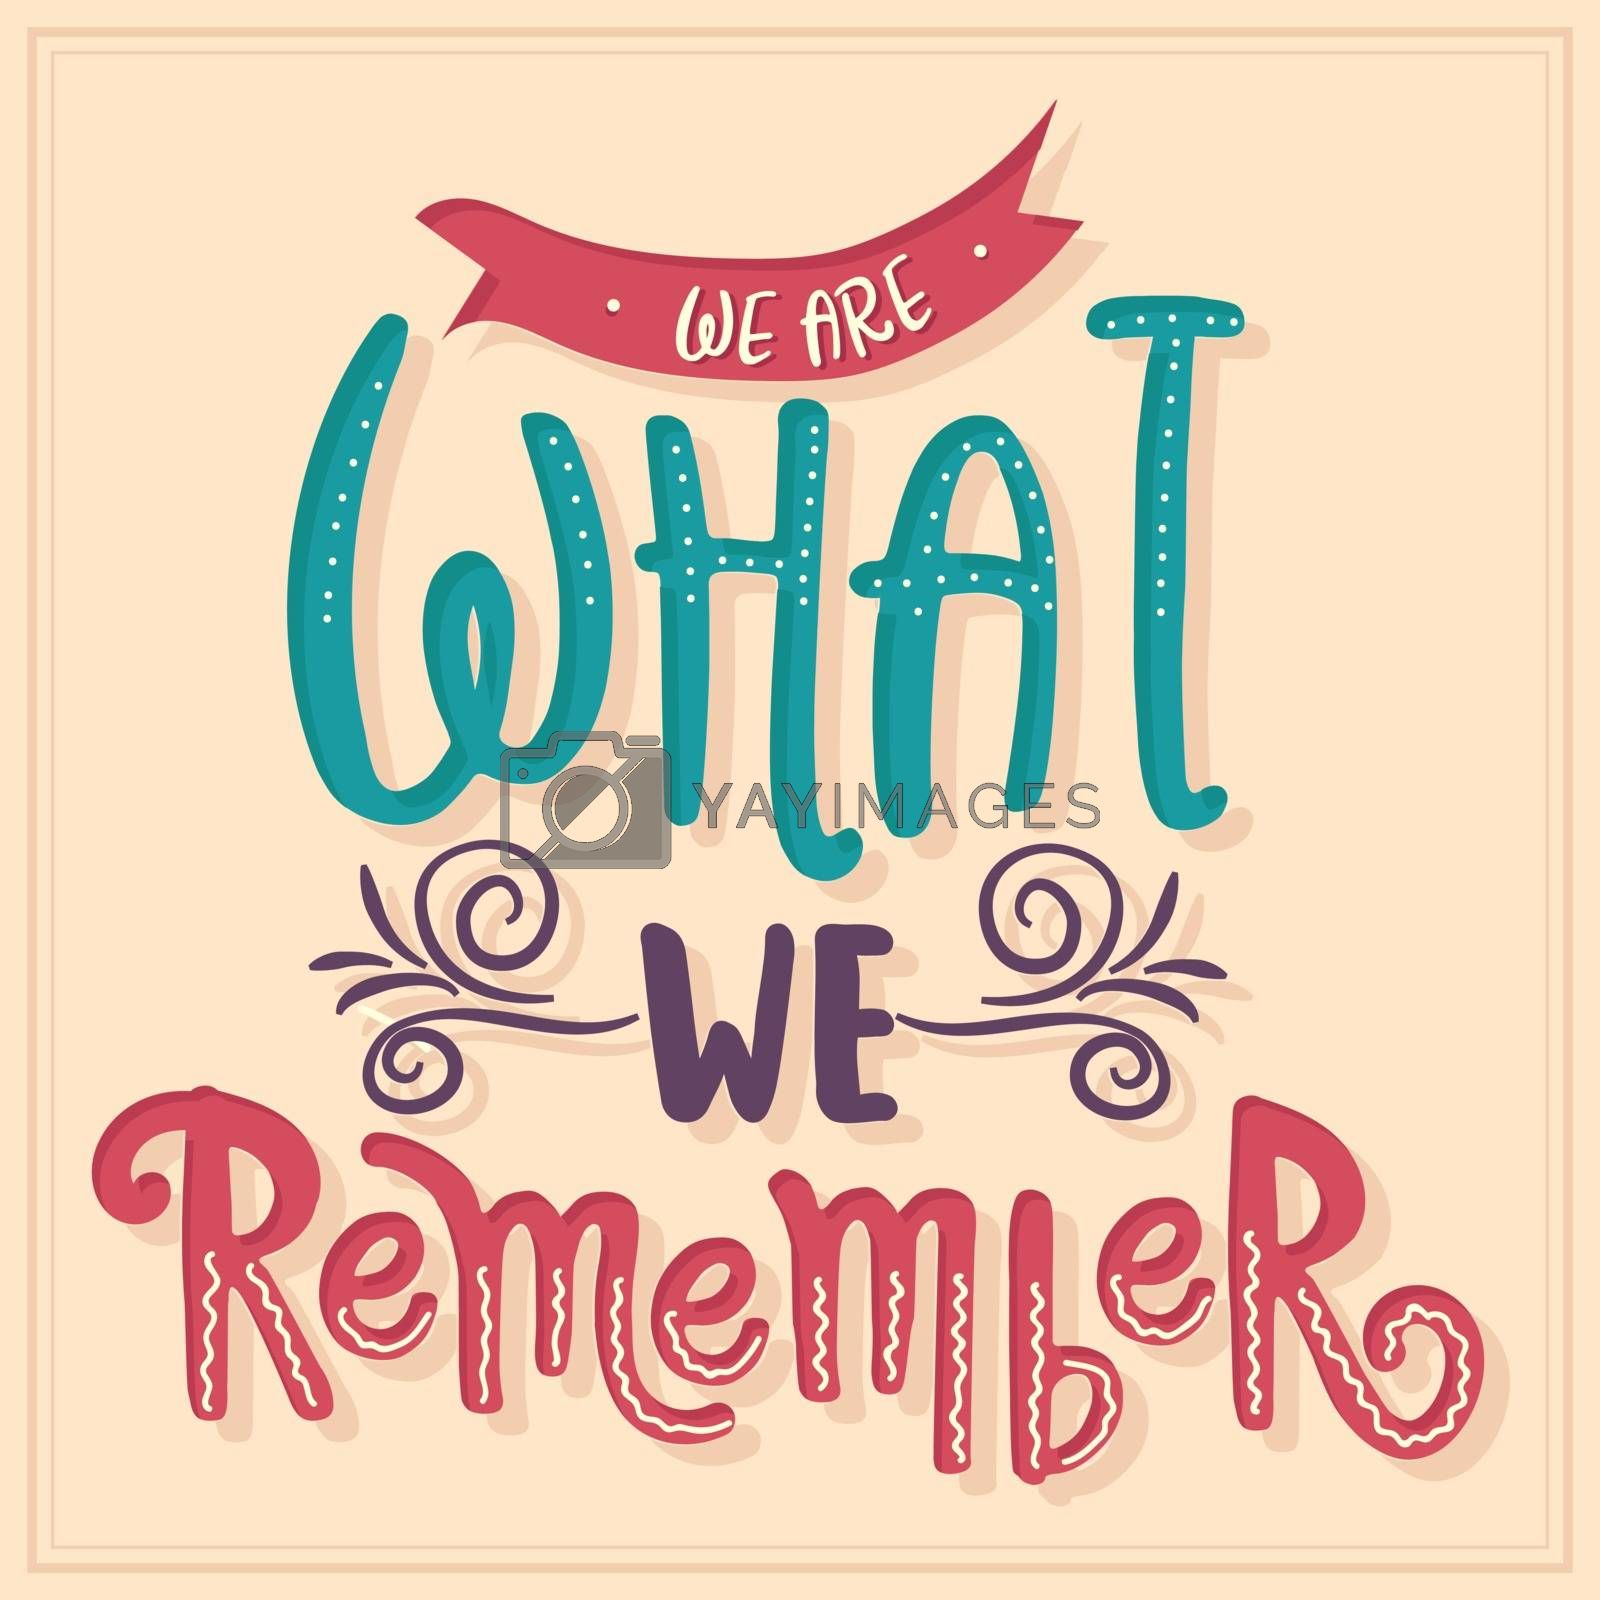 We are what we remember. Inspirational quote. Hand drawn illustration with hand-lettering and decoration elements. Drawing for prints on t-shirts and bags, stationary or poster.